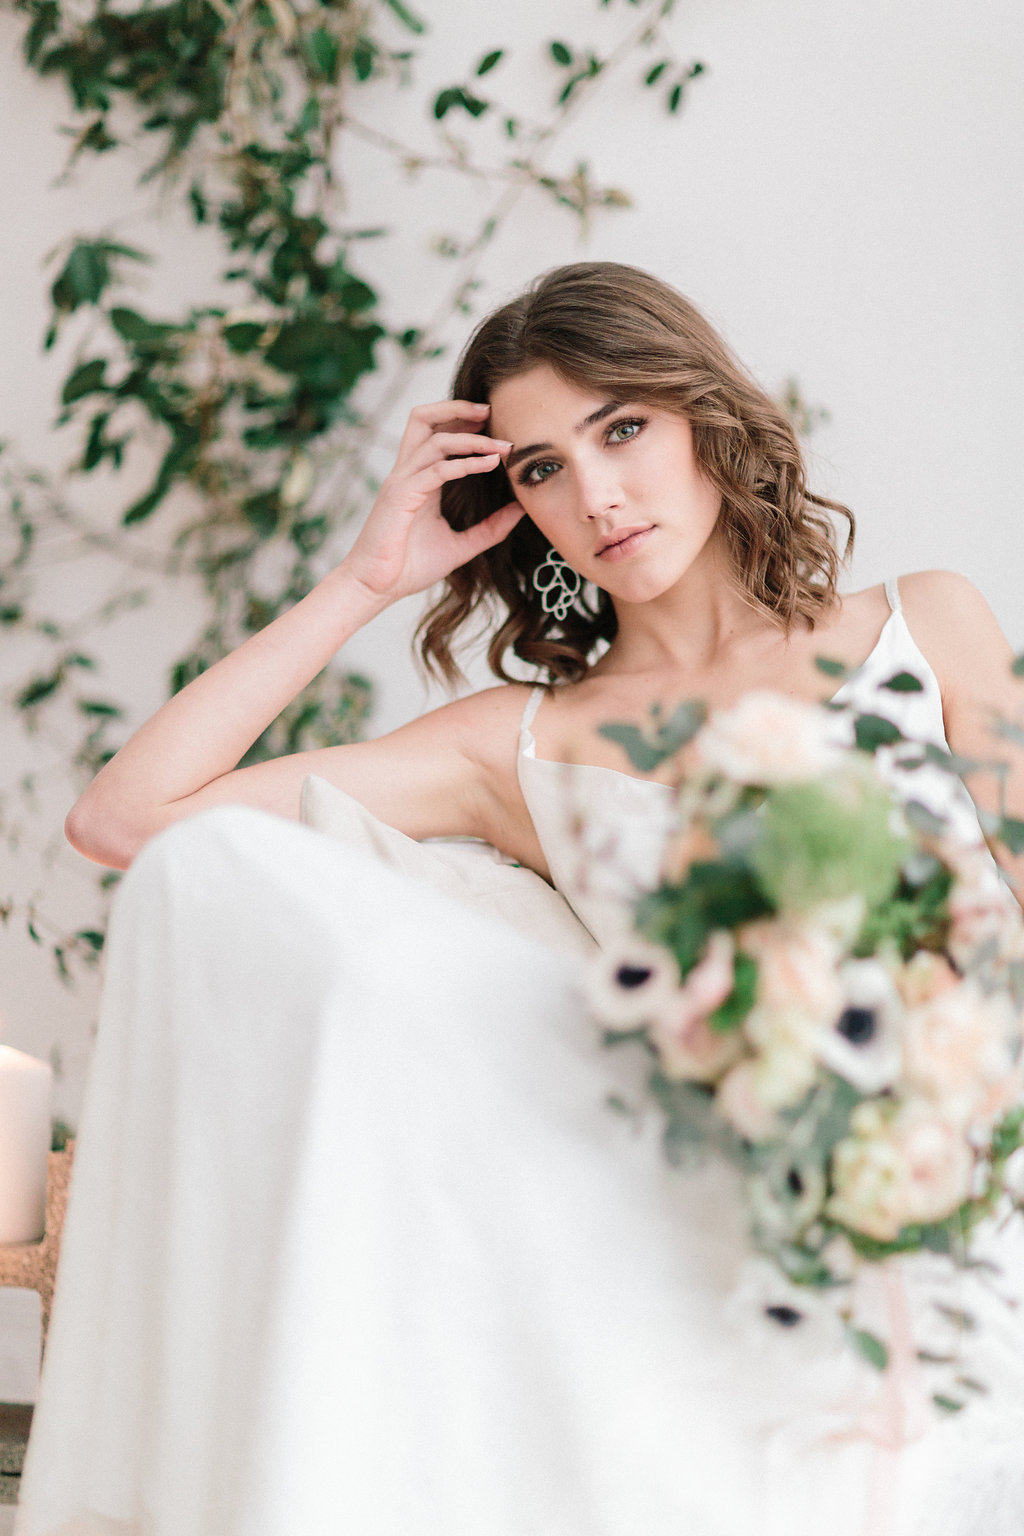 romantic bridal inspiration - photo by Julien Bonjour Photographe http://ruffledblog.com/airy-industrial-wedding-inspiration-for-spring